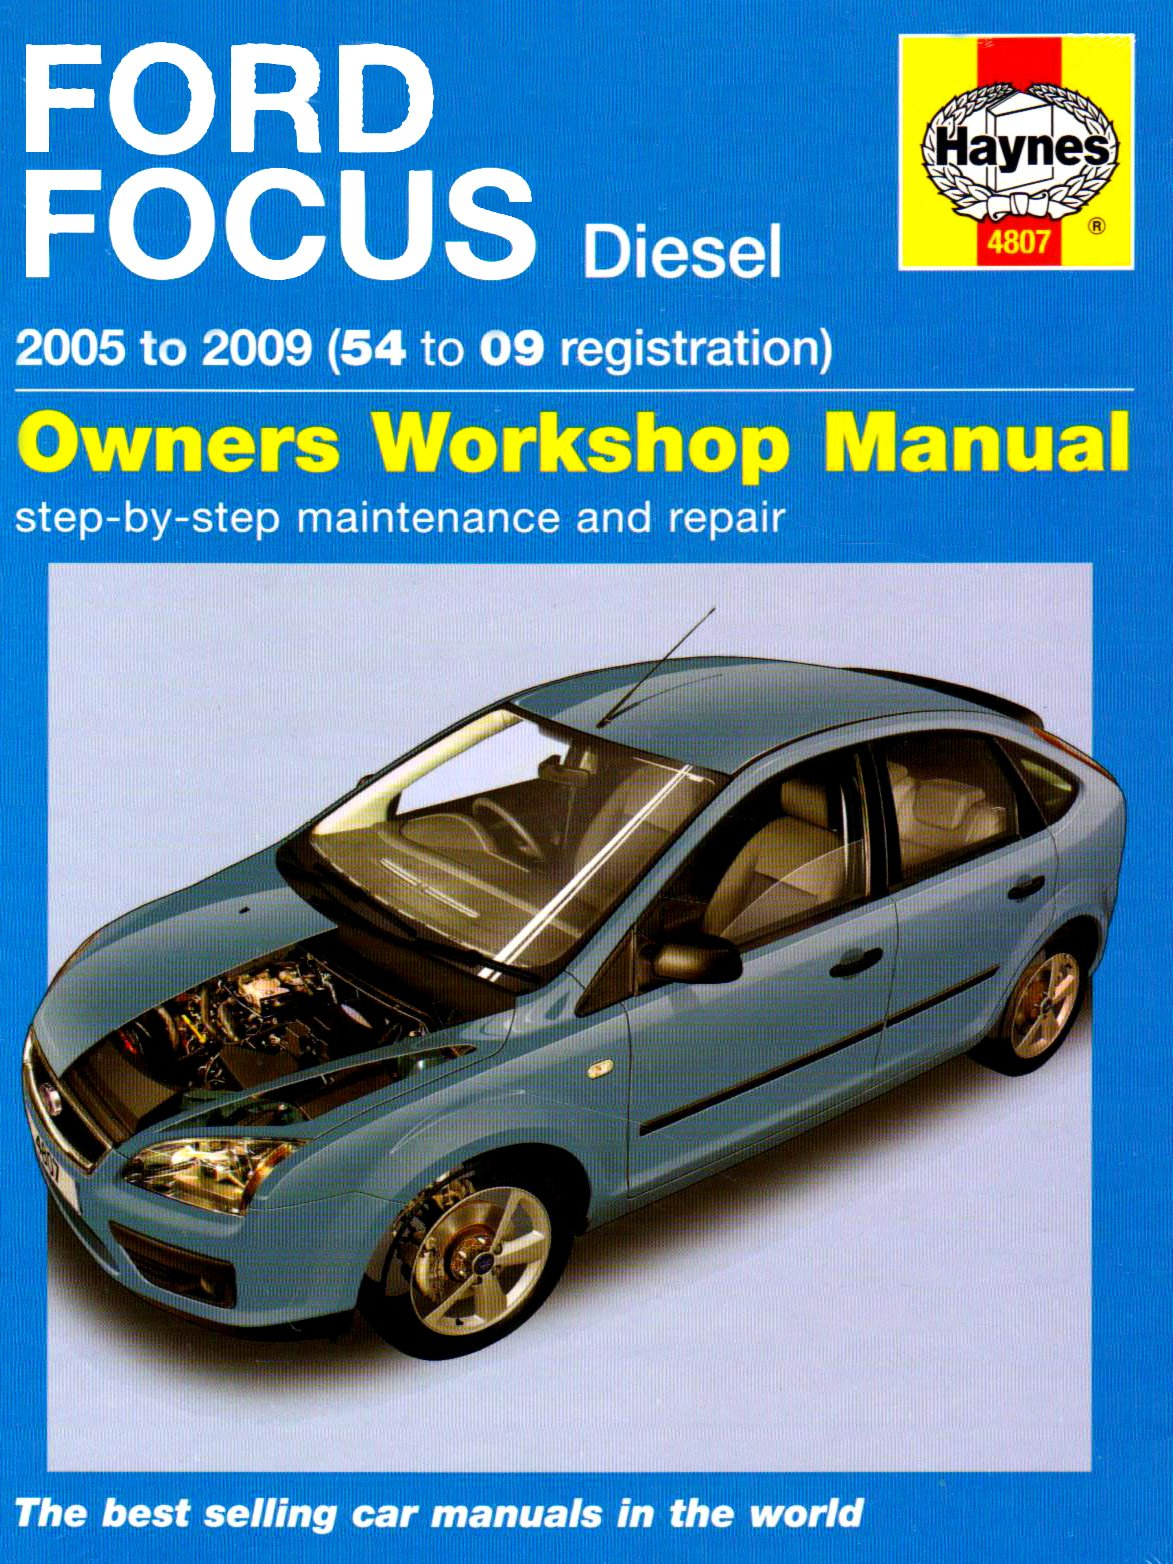 Ford Focus Diesel Service and Repair Manual: 2005 to 2009 (Haynes Service  and Repair Manuals): 0638876409490: Amazon.com: Books